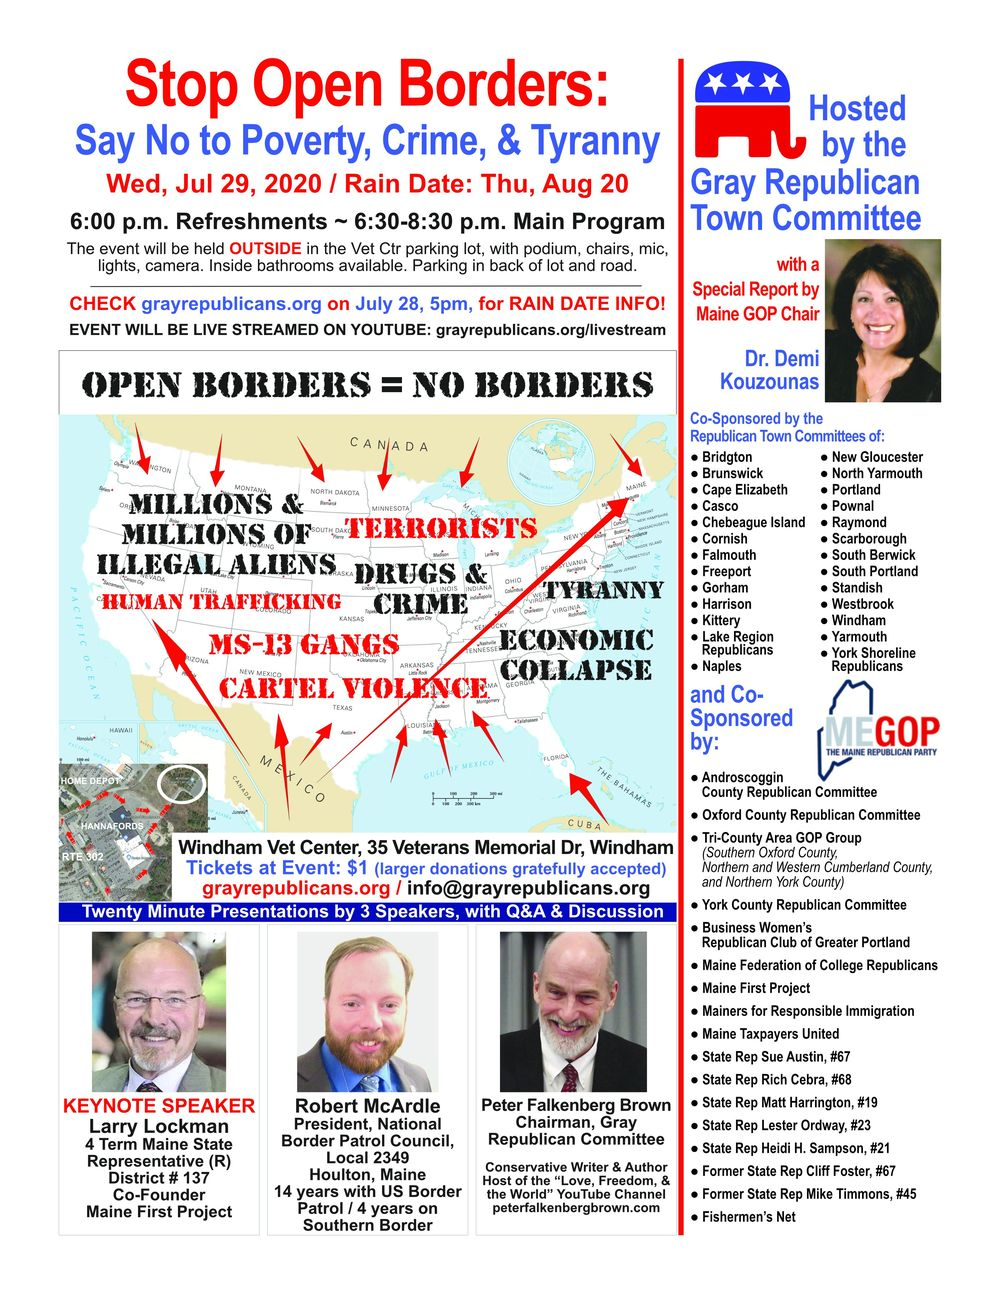 Stop Open Borders: Say No to Poverty, Crime, & Tyranny